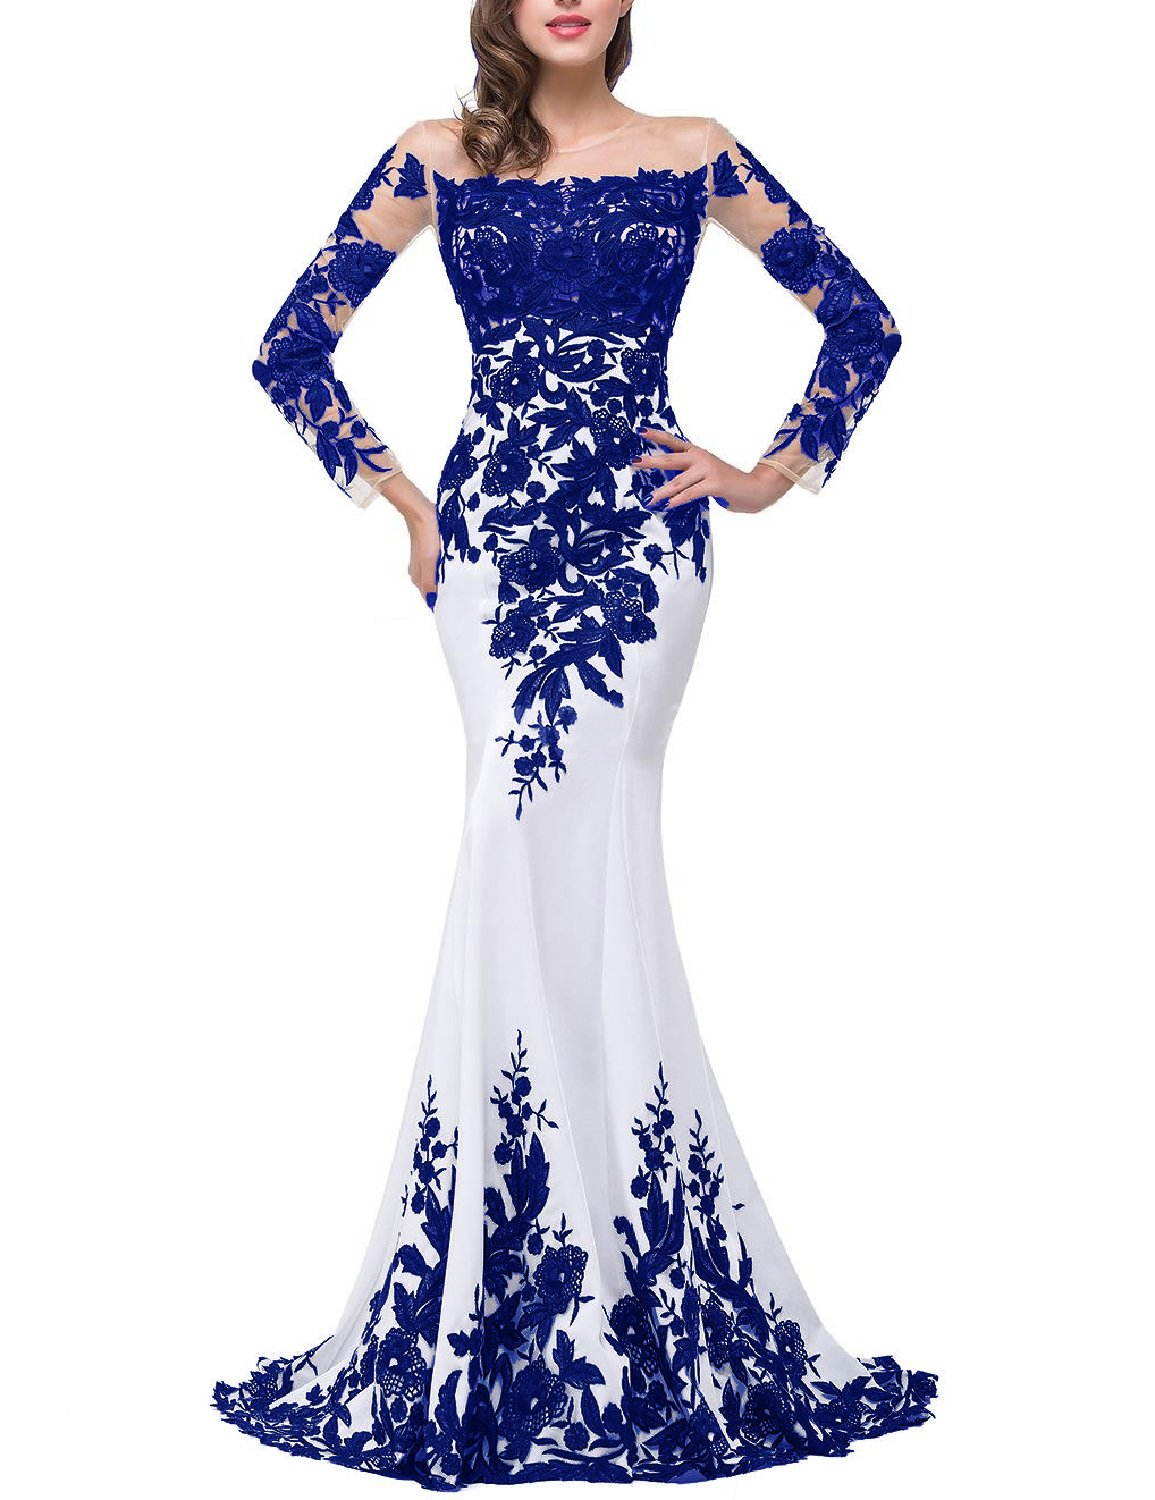 Available at Amazon: OYISHA Women's Lace Applique Evening Dress with Long Sleeves Long Mermaid Wedding Celebrity Gown EV122